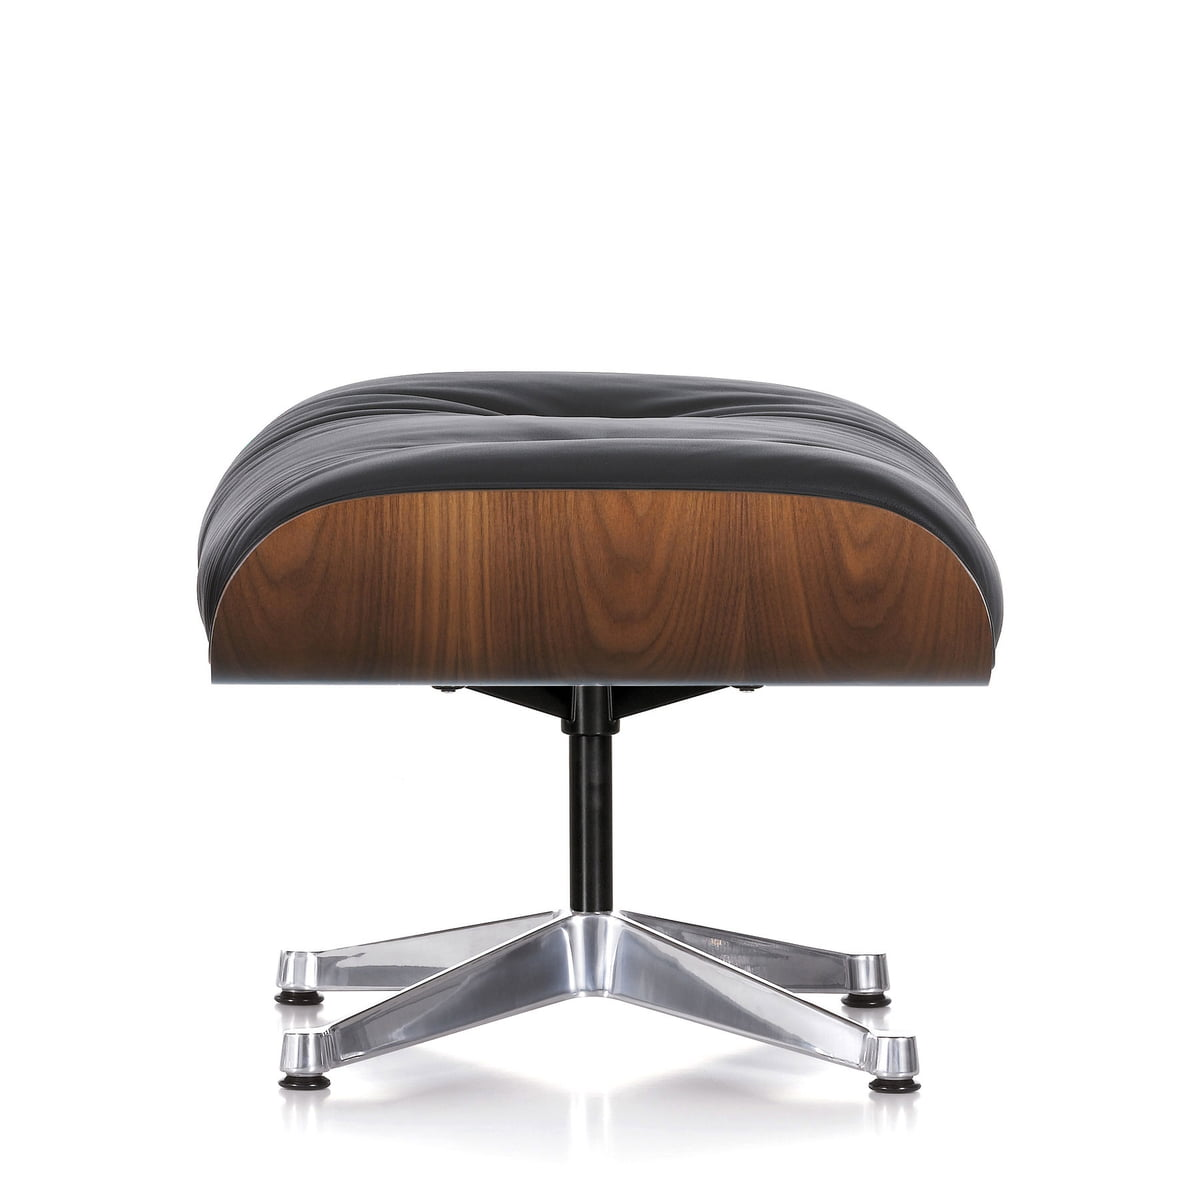 vitra ottoman f r lounge chair bei. Black Bedroom Furniture Sets. Home Design Ideas